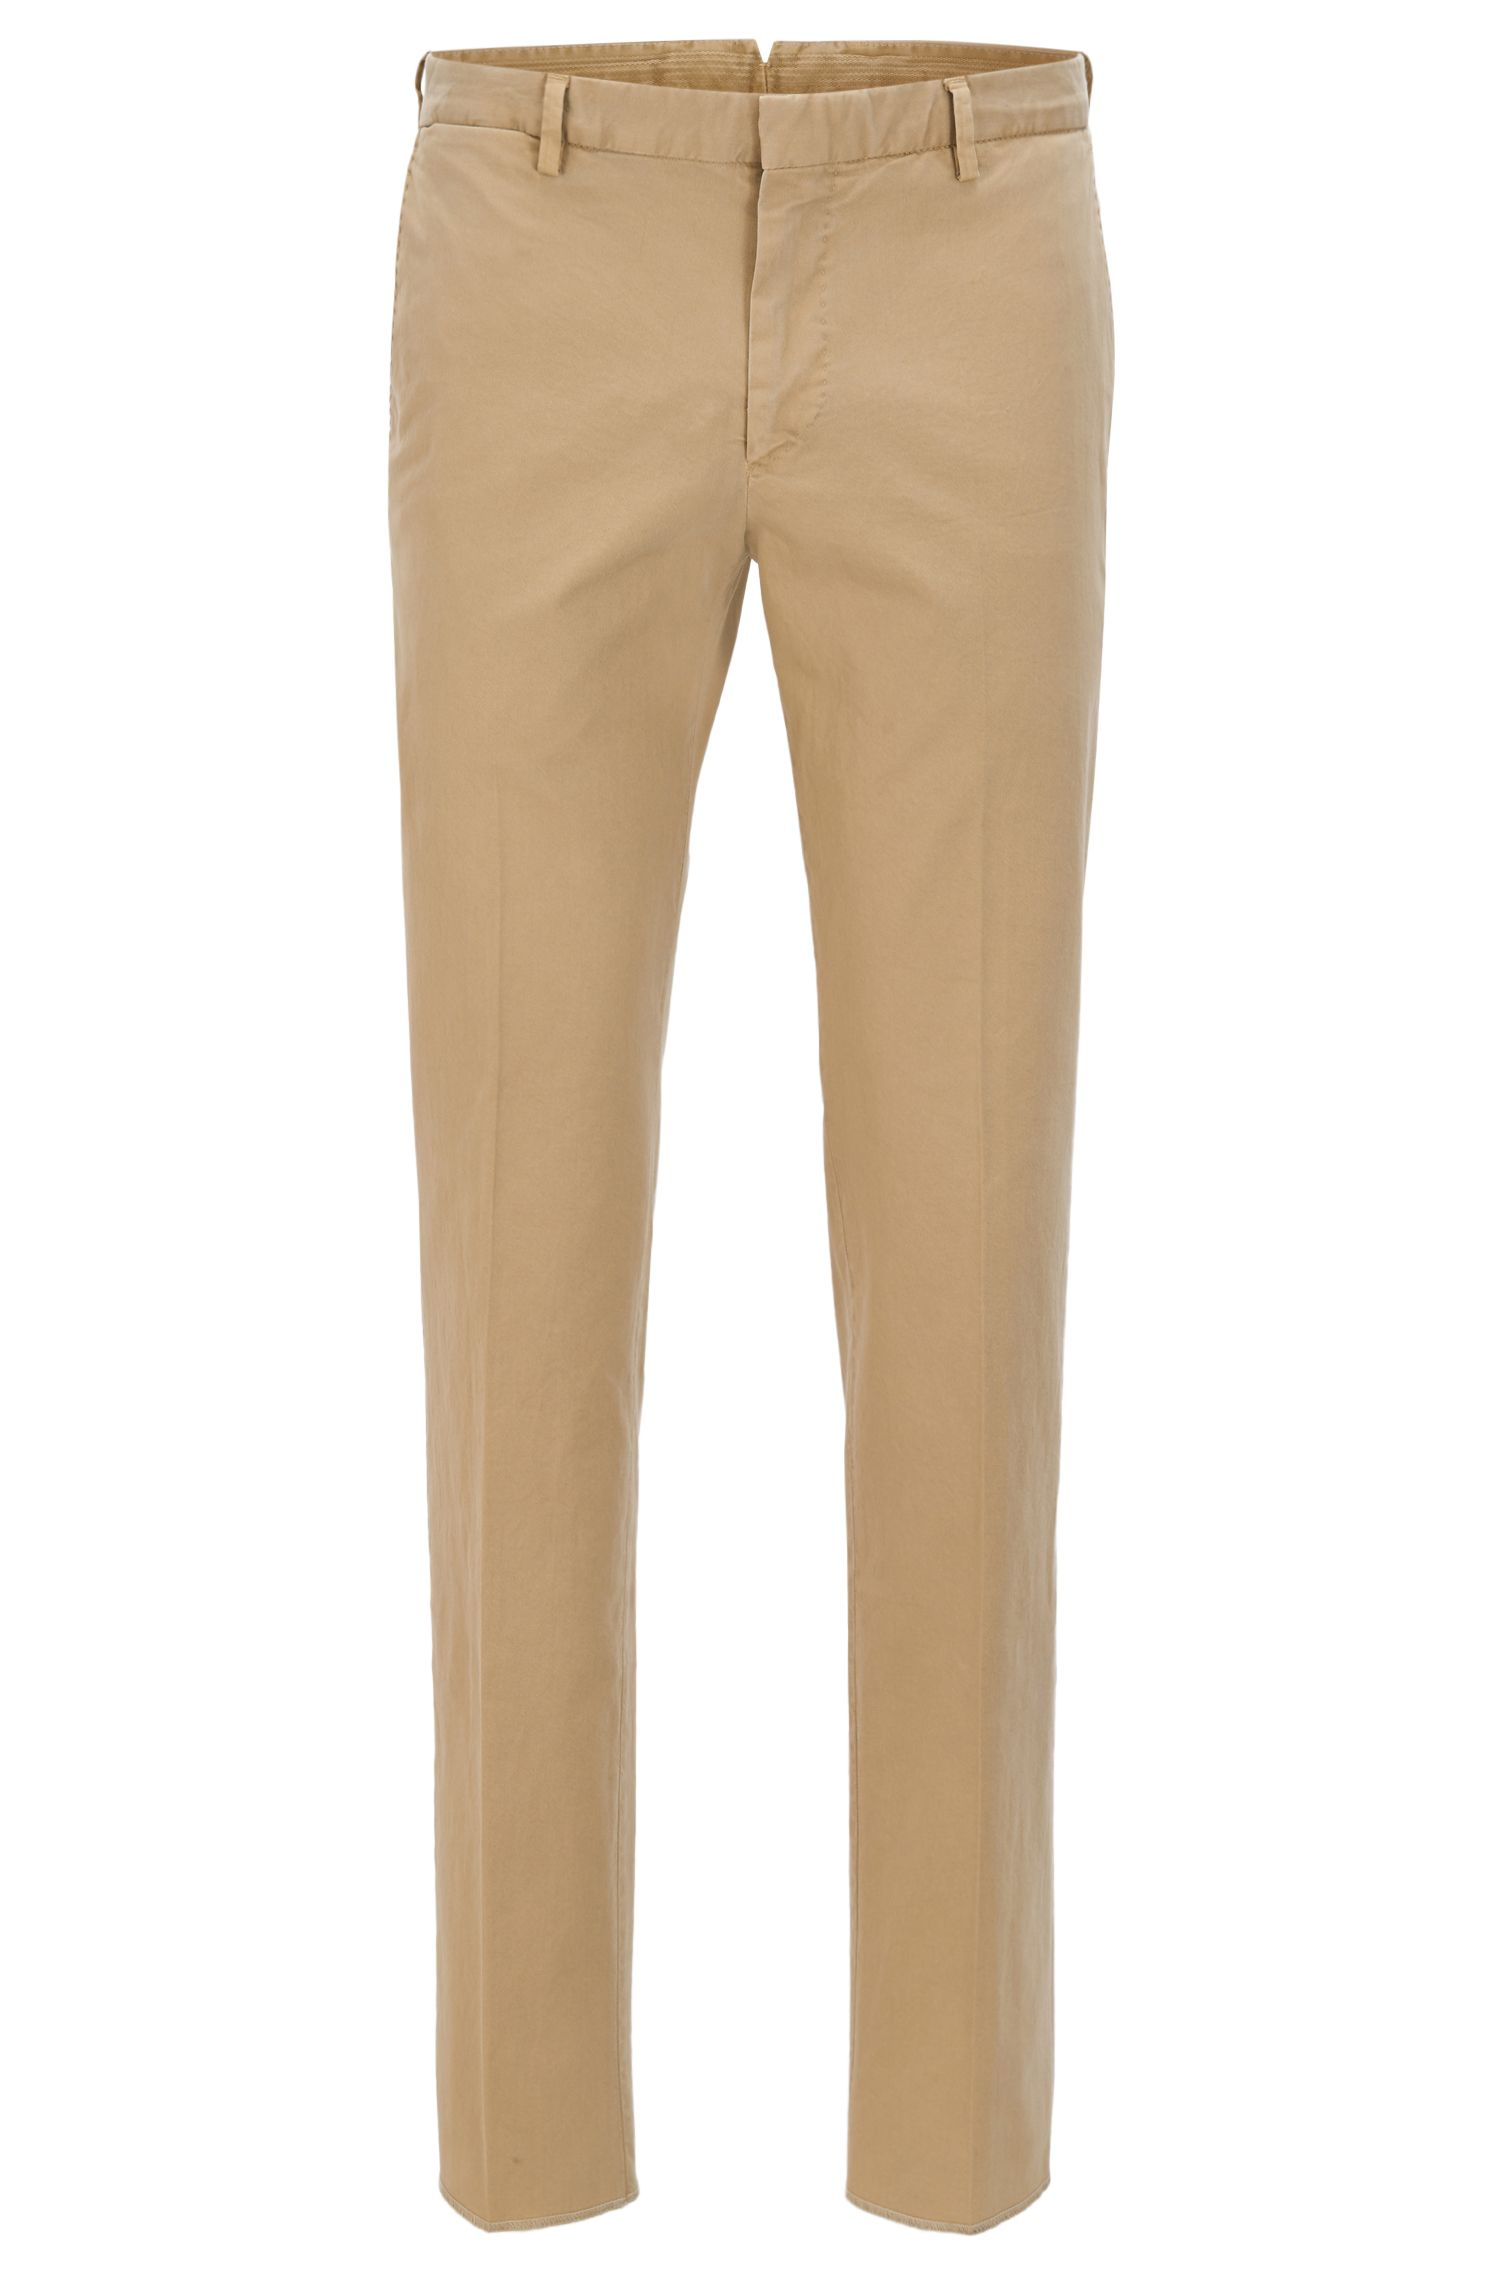 Garment-Dyed Stretch Cotton Suiting Pant, Slim Fit | Barlow D